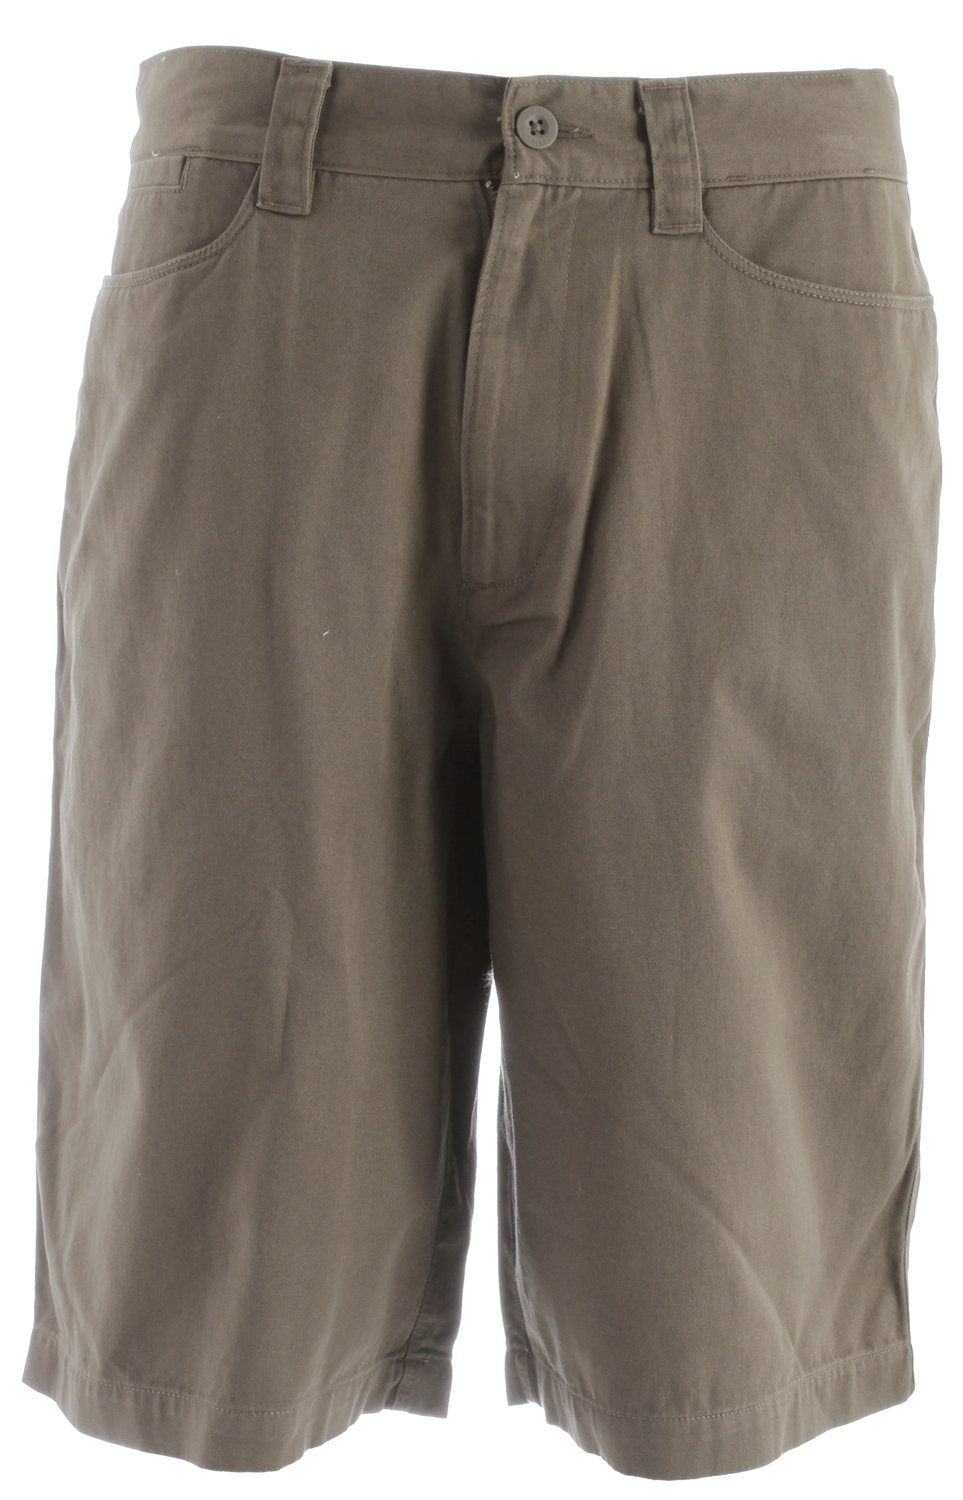 Key Features of the The North Face Silverton Shorts: Fabric: 100% cotton Soft, peached cotton with heritage wash Ultraviolet protection factor (UPF) 50 Gusset at crotch Secure back pockets with Velcro closure - $30.95